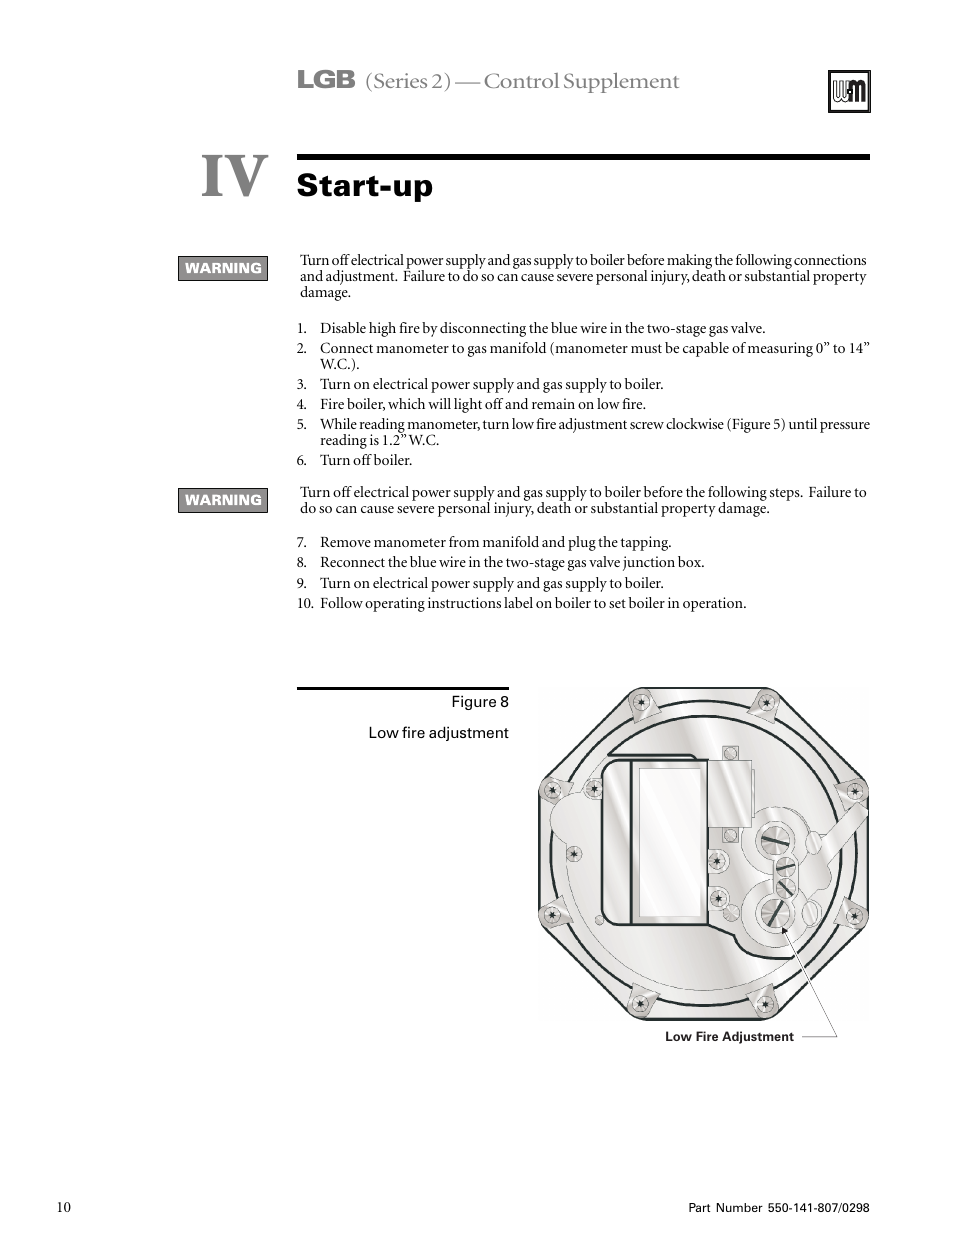 Startup, Start-up | Weil-McLain FLAME GUARDIAN WMBC-1A User Manual on gas valve safety, grill thermometer schematic, gas valve 24v wiring-diagram, gas valve dimensions, york heating schematic, millivolt gas valve schematic, gas valve specifications, gas heater wiring diagram, gas pool schematic, gas valve screwdriver, zone valve wiring schematic, gas log valve wiring diagram, gas valve connectors, gas wall heater thermostat wiring, gas valve operation, gas valves schematic diagrams, gas valve circuit board, gas wall heaters diagram, ducane 5 burner grill schematic, gas valve troubleshooting,